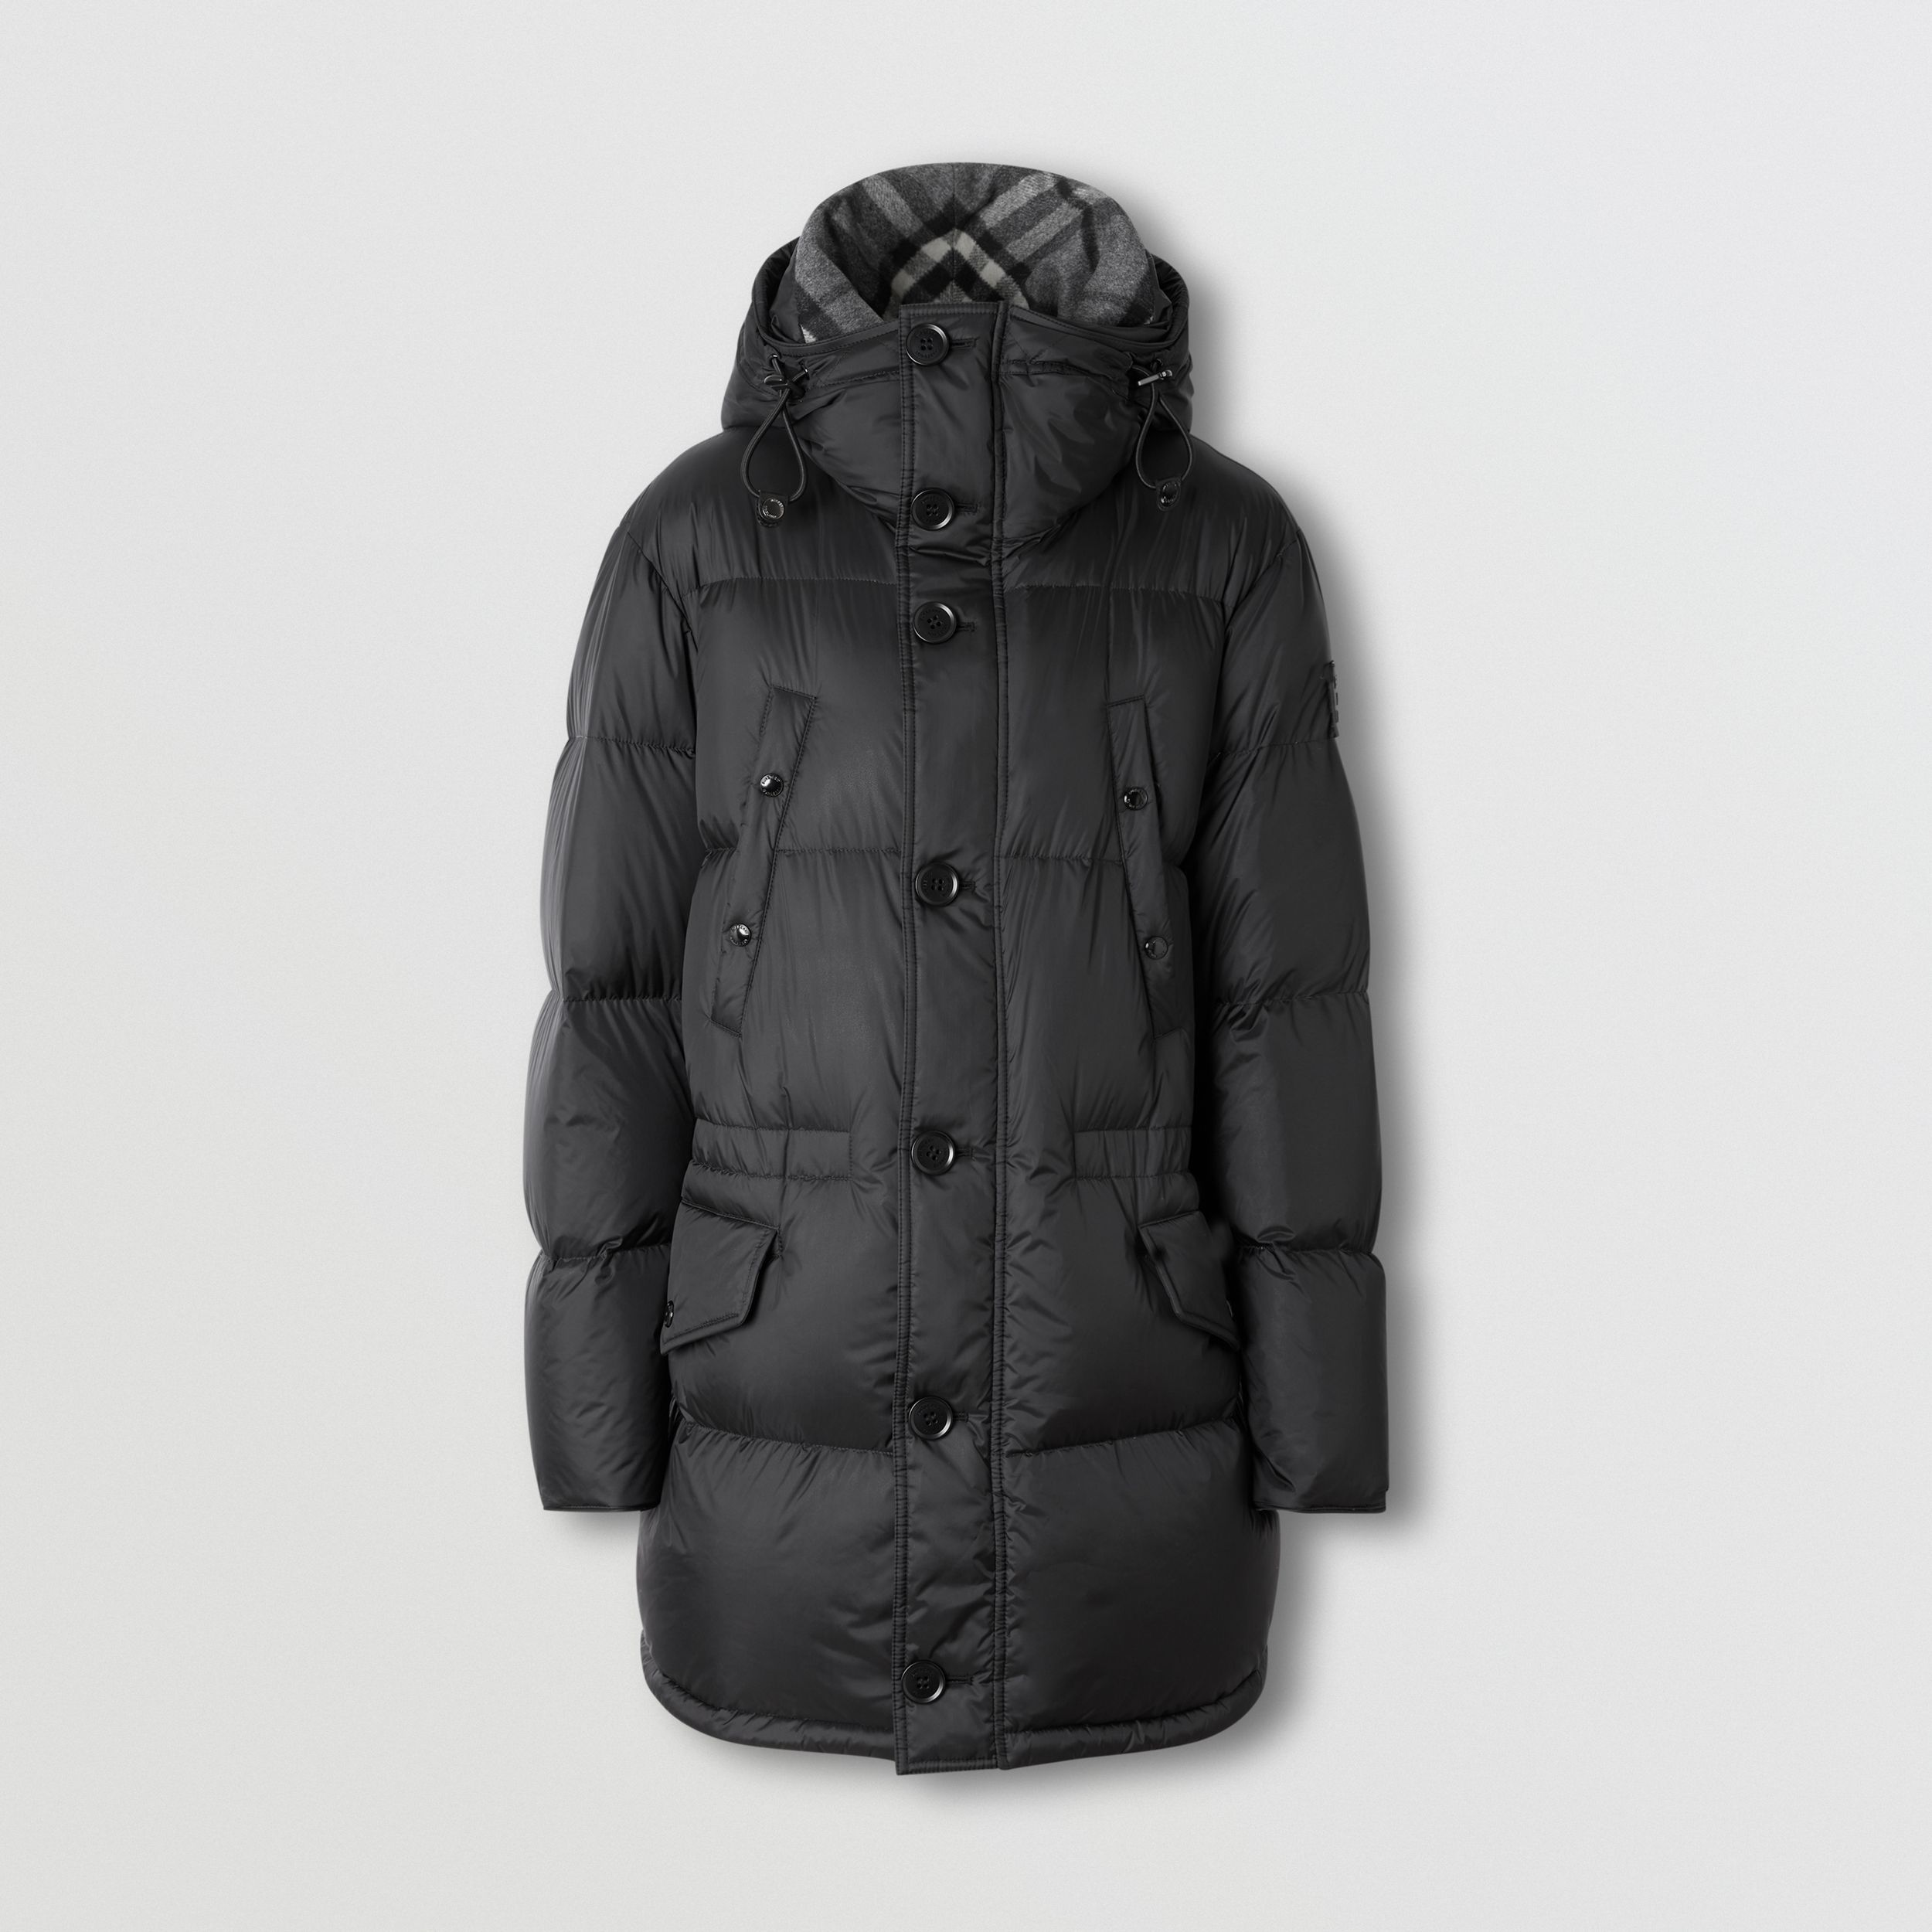 Logo Detail Hooded Puffer Coat in Black - Men | Burberry Canada - 4